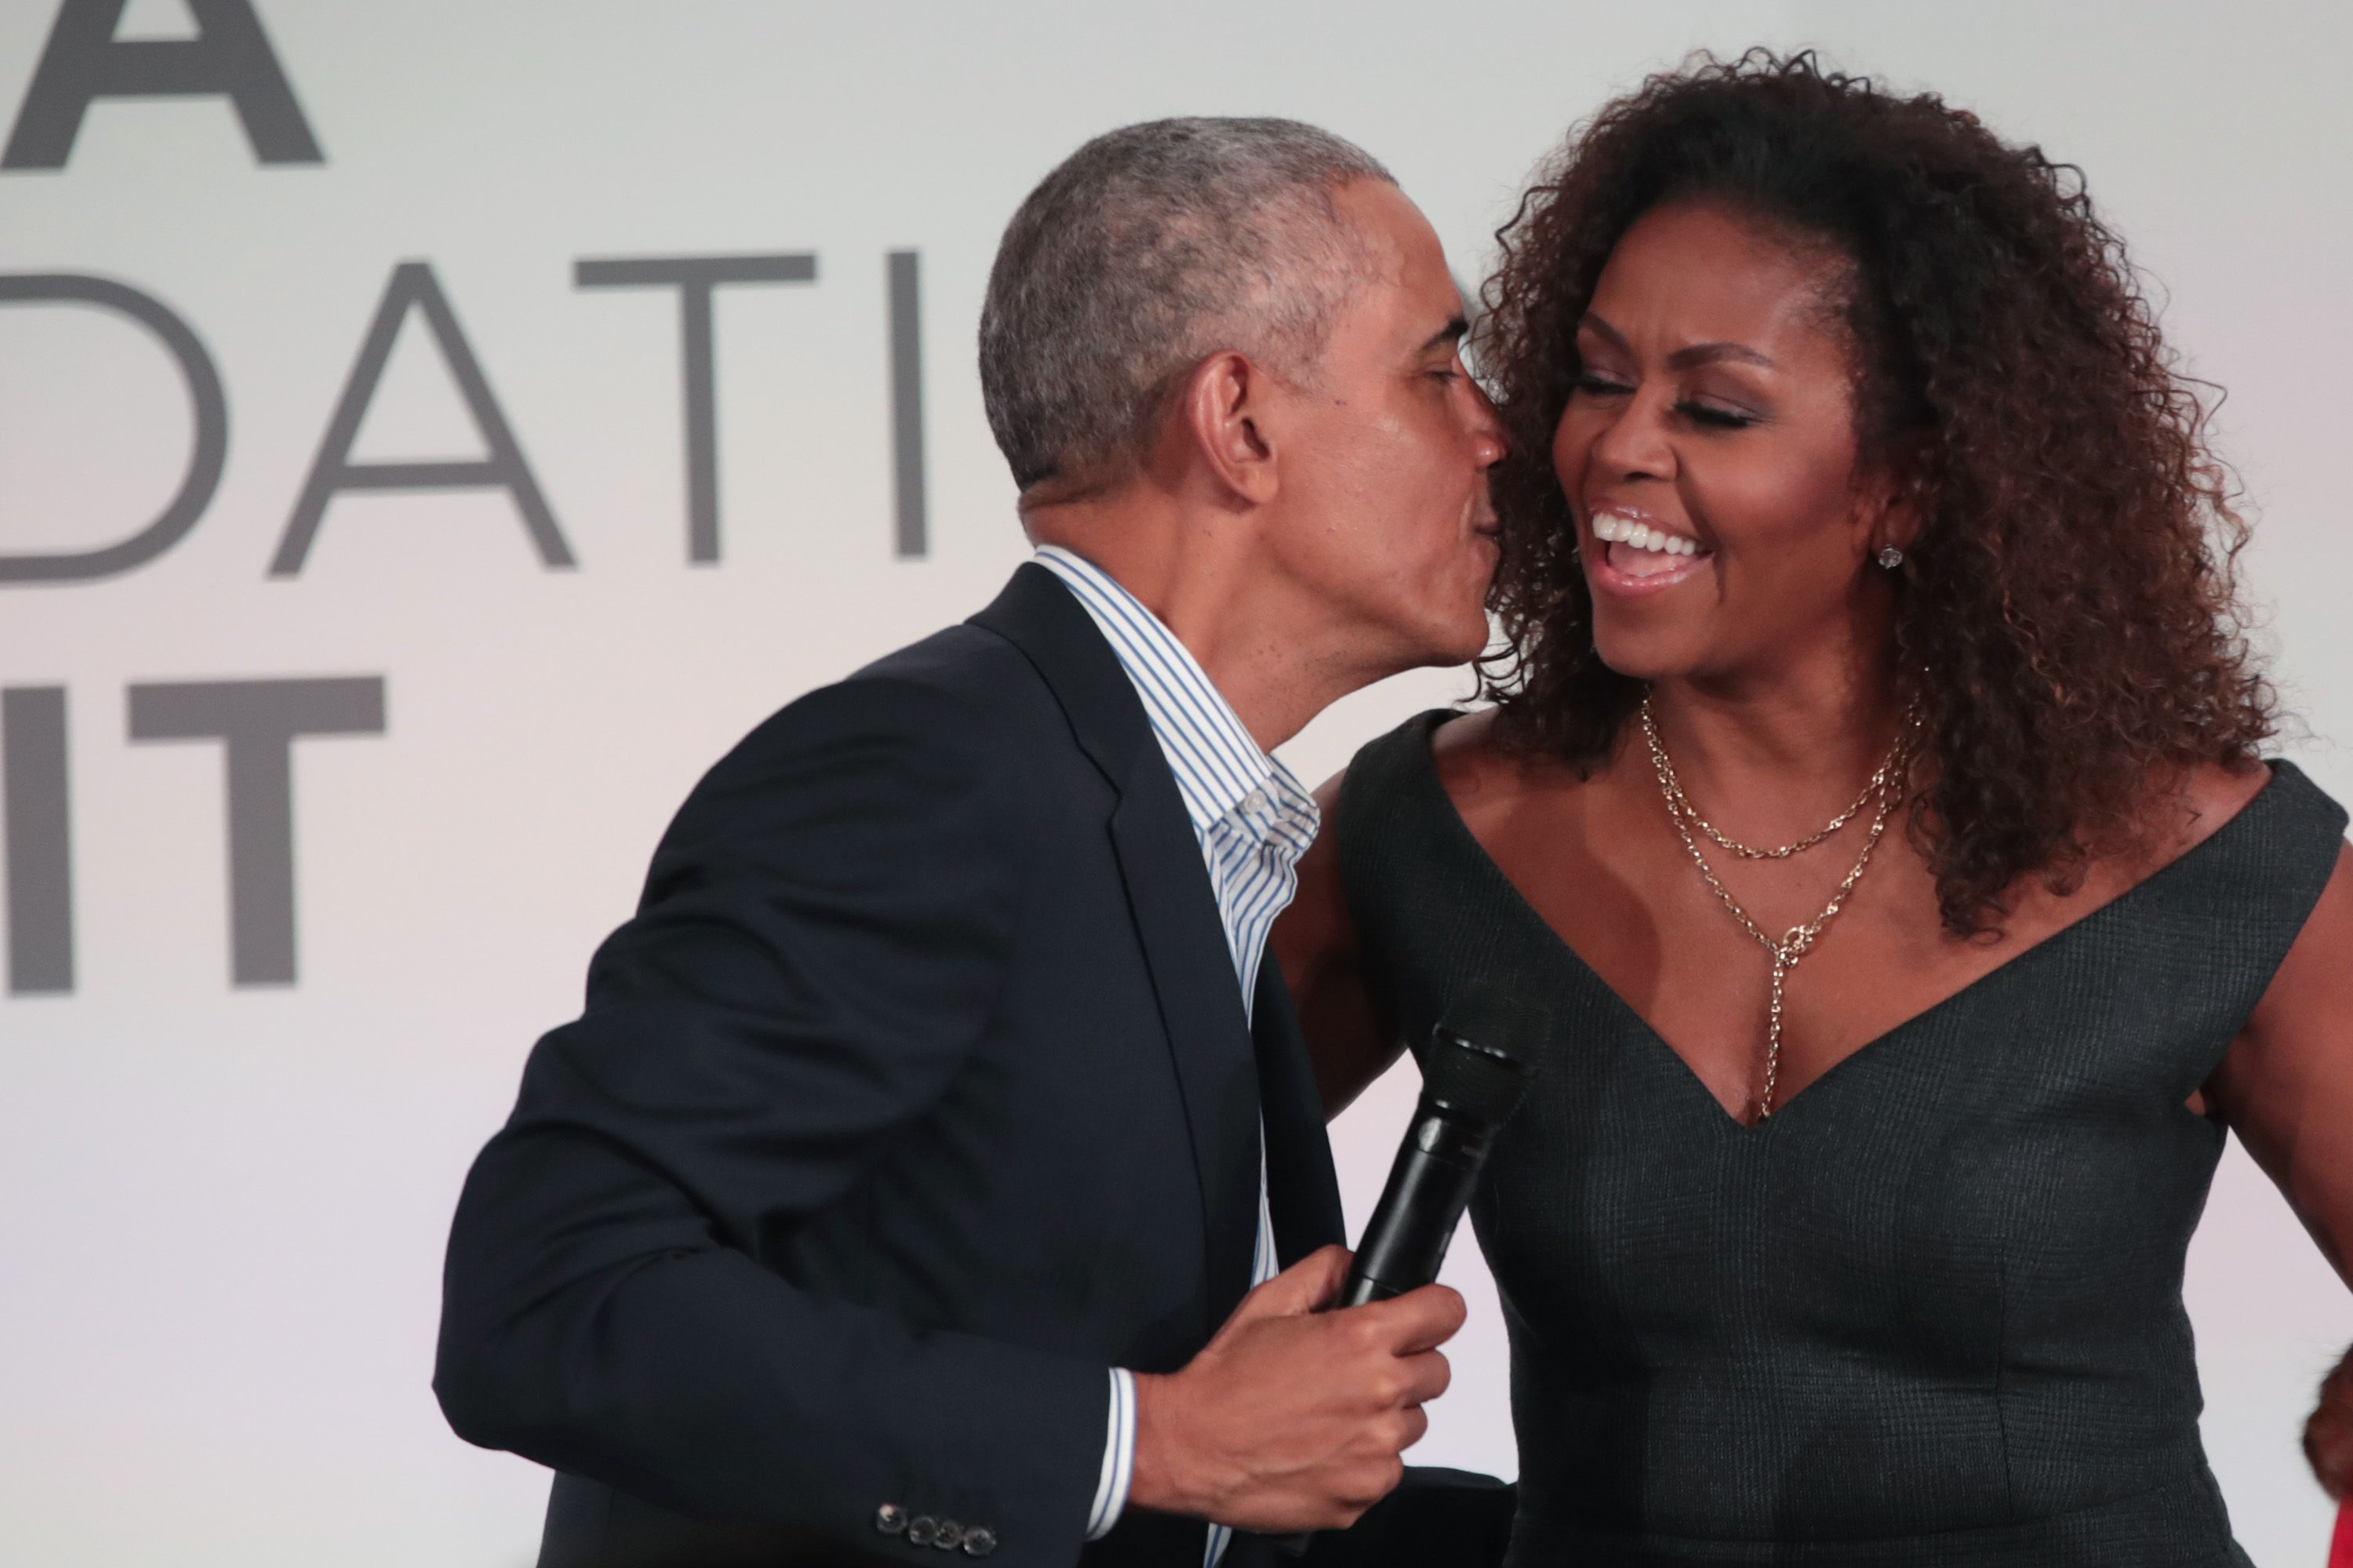 Barack Obama gives his wife Michelle a kiss as they close the Obama Foundation Summit together on the campus of the Illinois Institute of Technology on October 29, 2019. | Photo: Getty Images